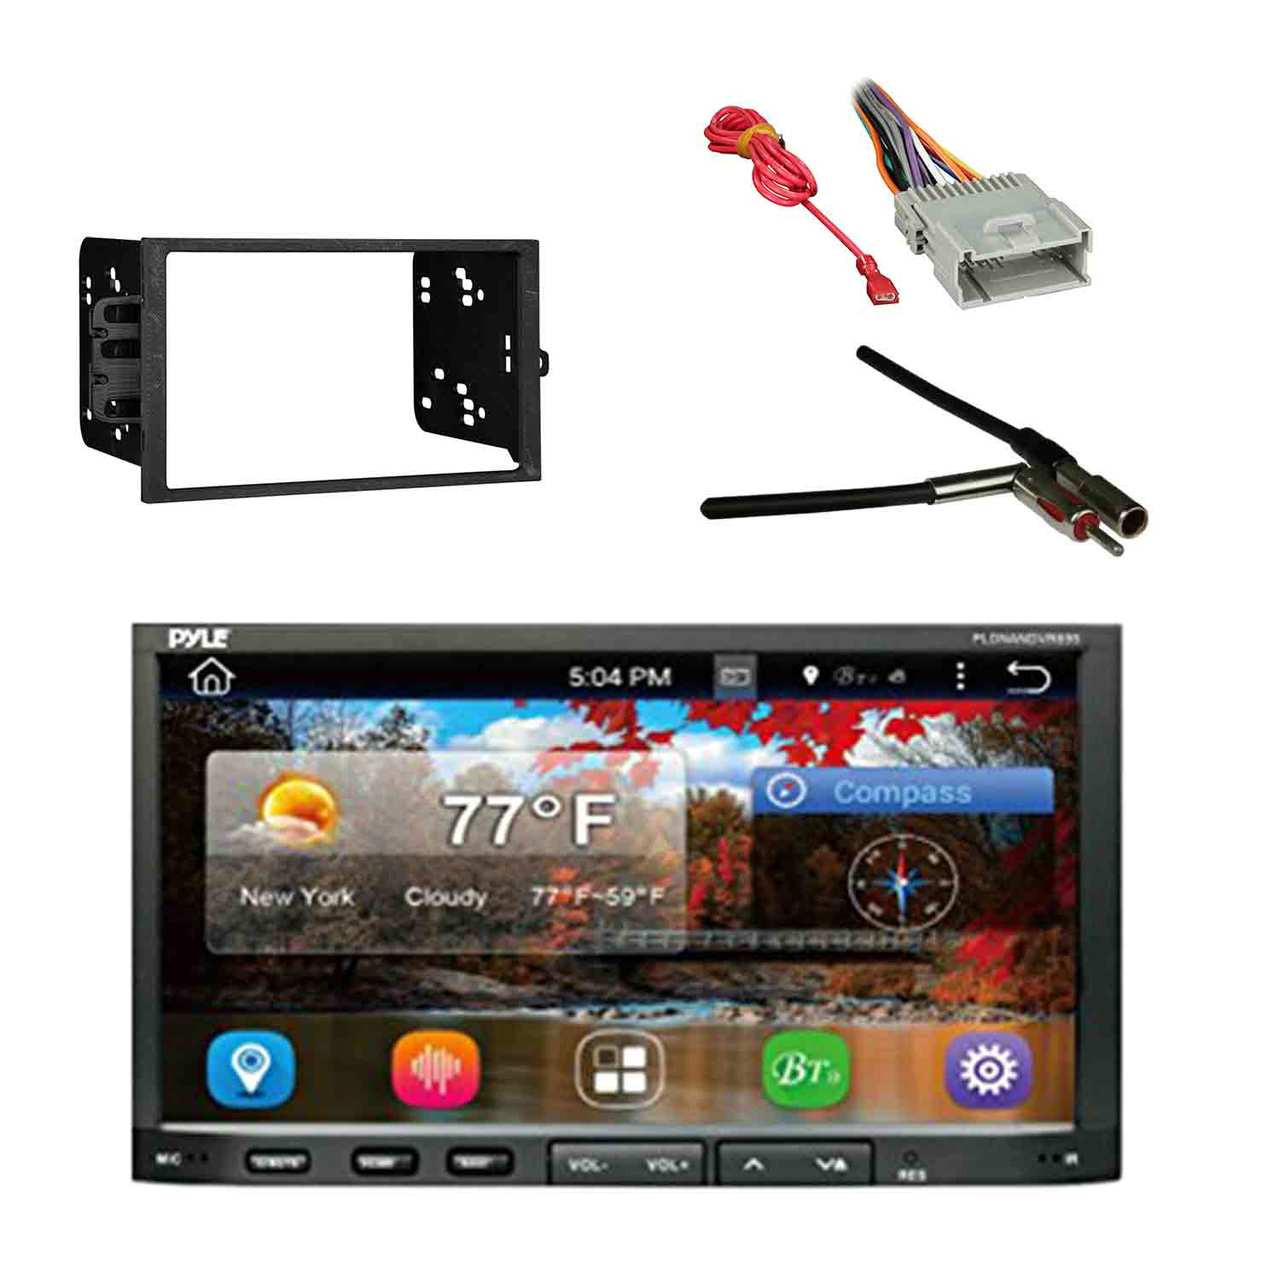 small resolution of car stereo 2 din receiver with metra dash kit metra adapter pyle wiring harness s10